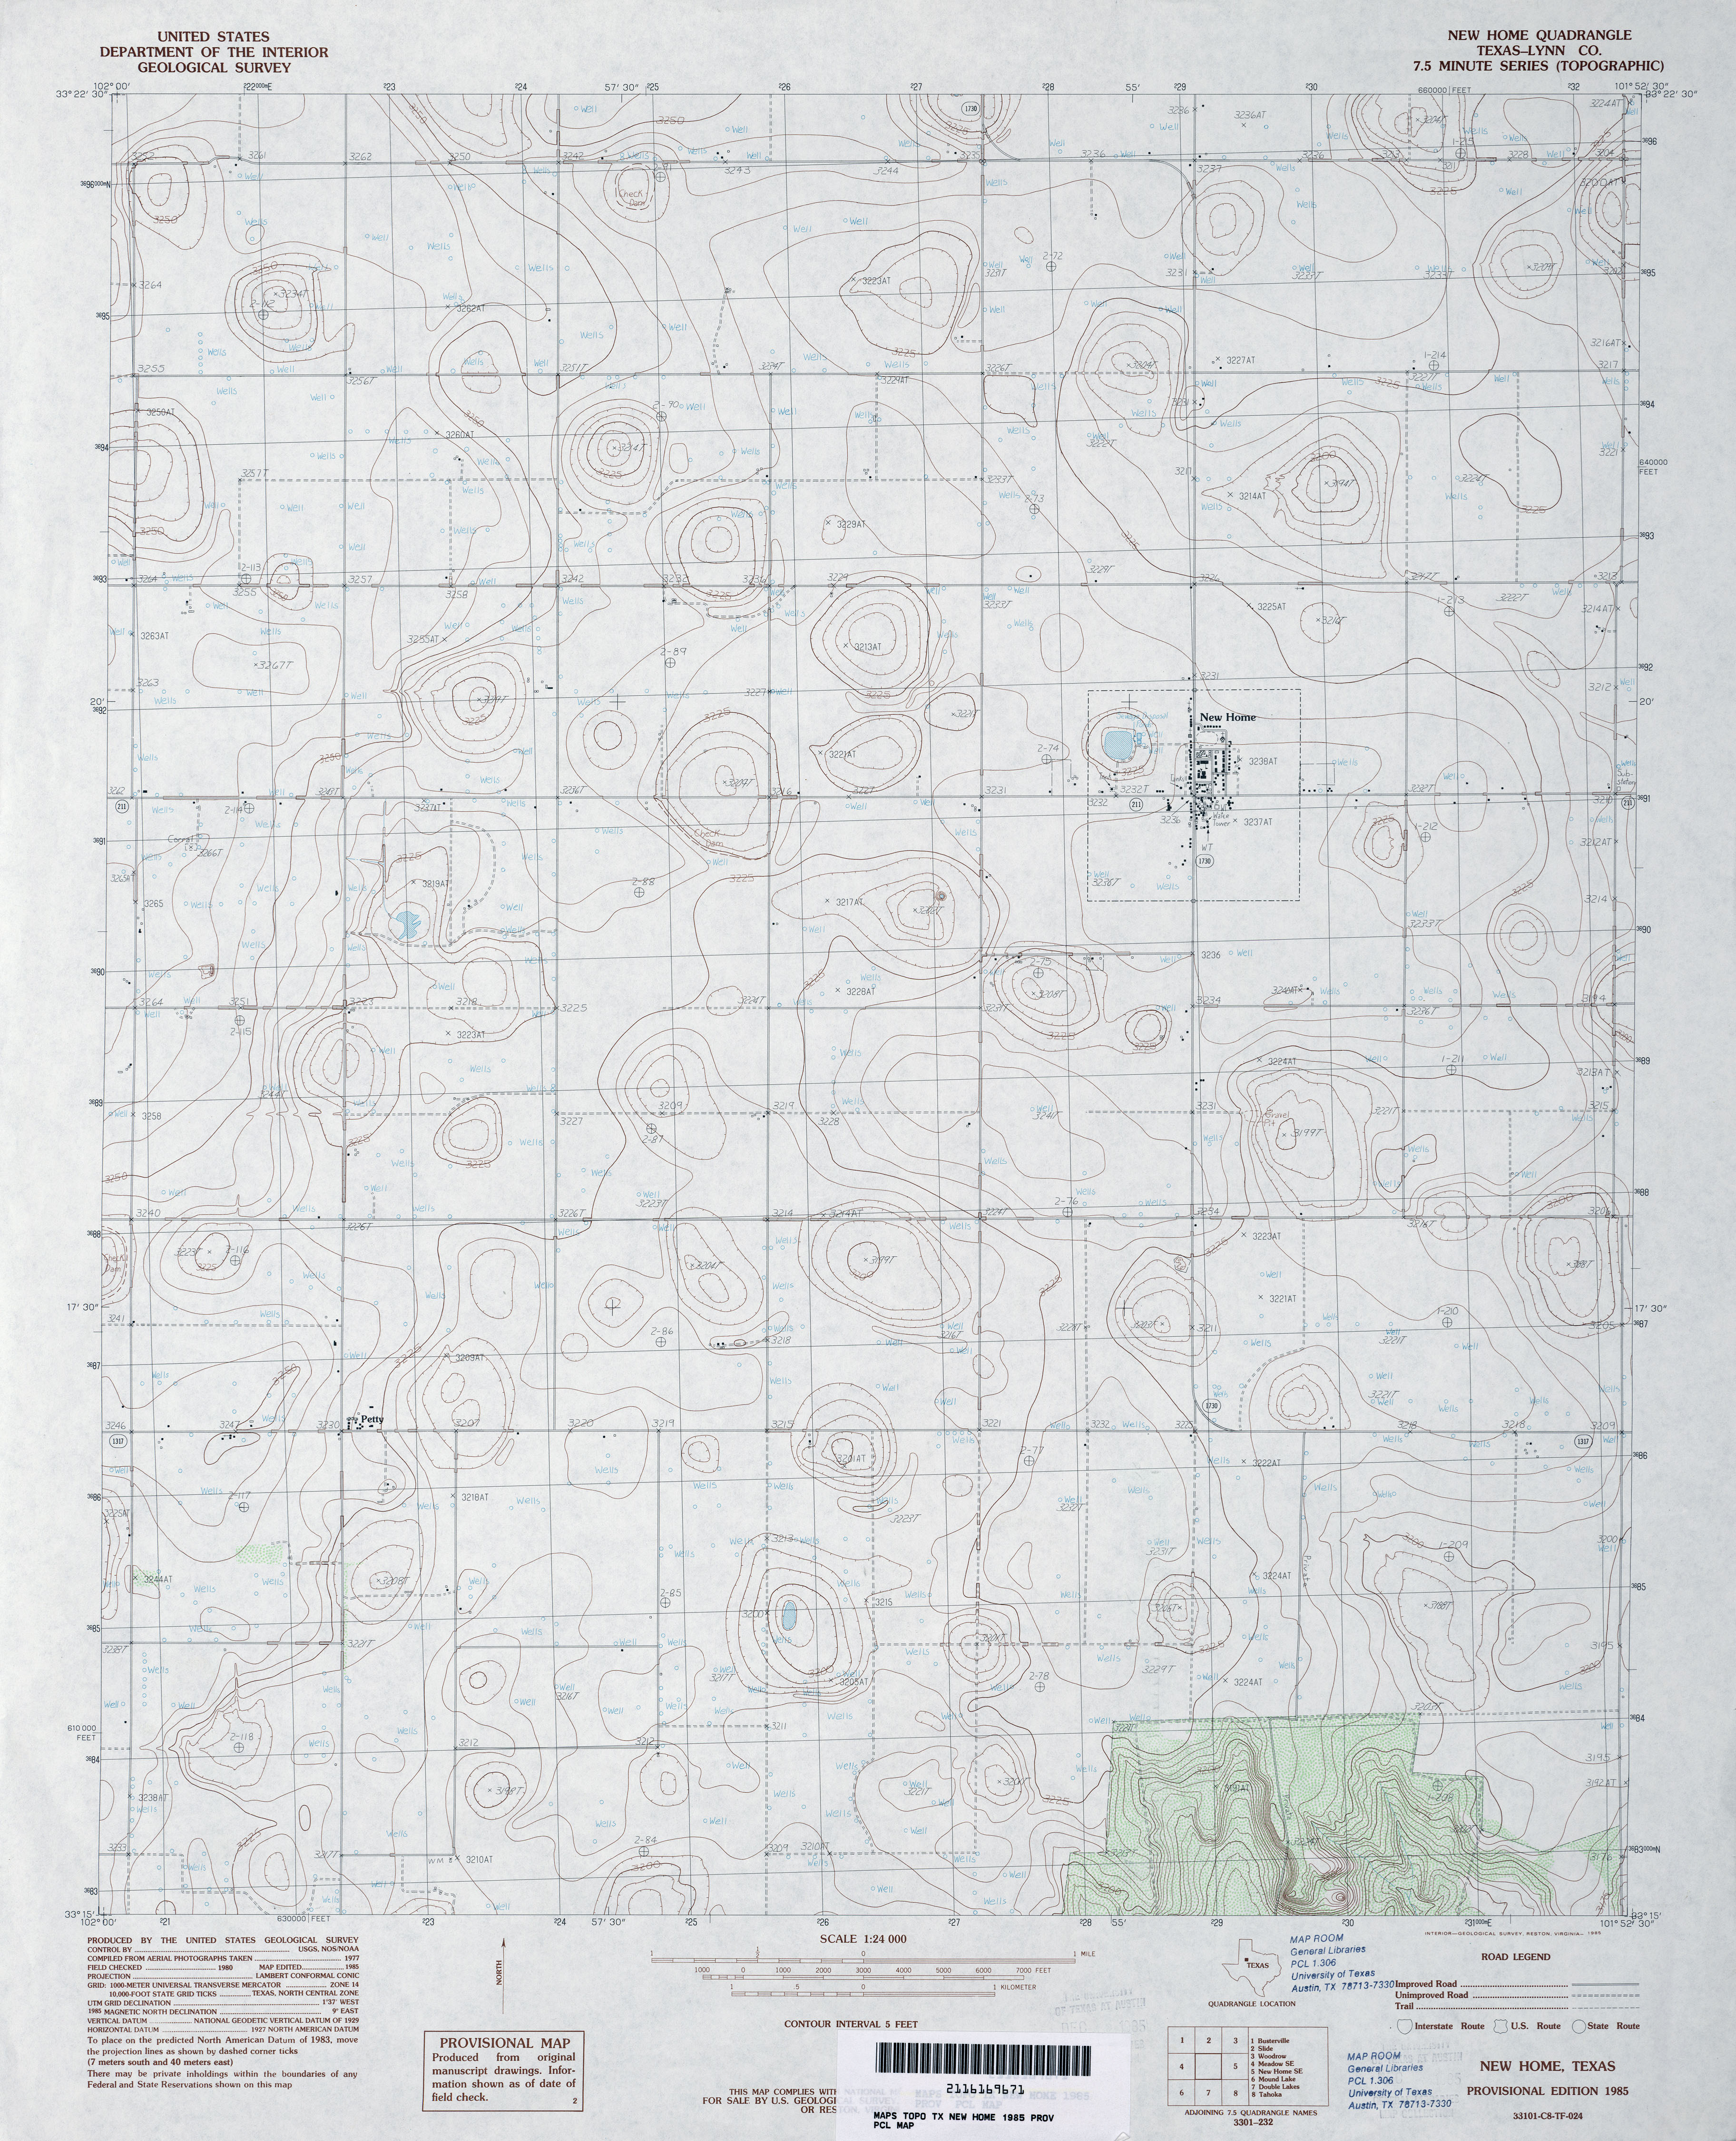 Texas Topographic Maps - Perry-Castañeda Map Collection - UT Library